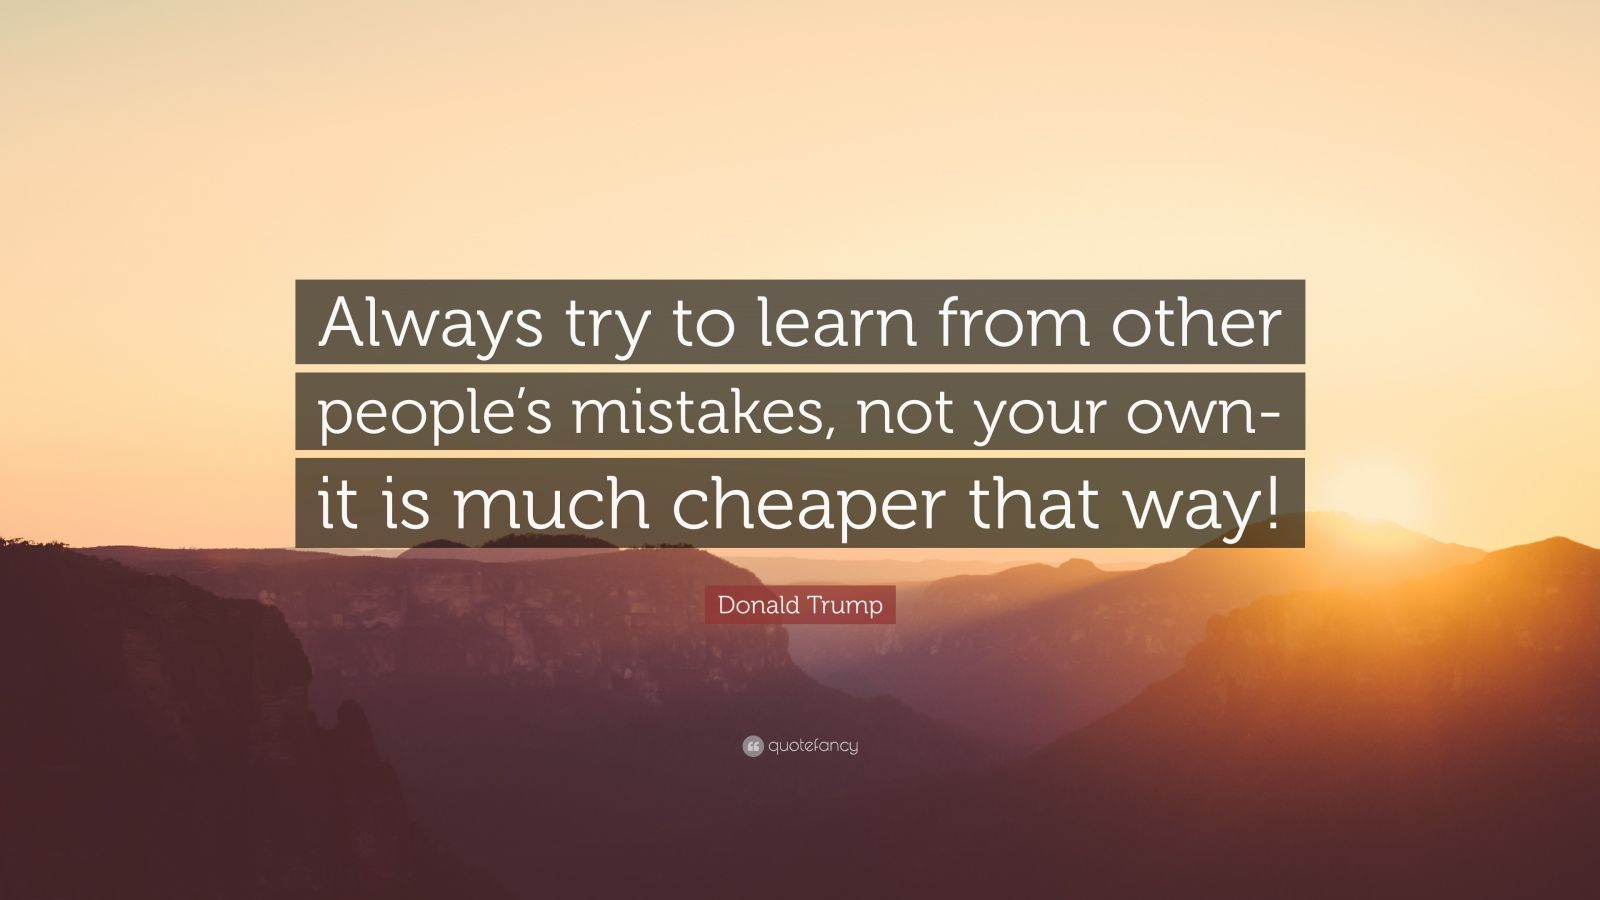 """Donald Trump Quote: """"Always try to learn from other people's mistakes, not your own- it is much cheaper that way!"""""""